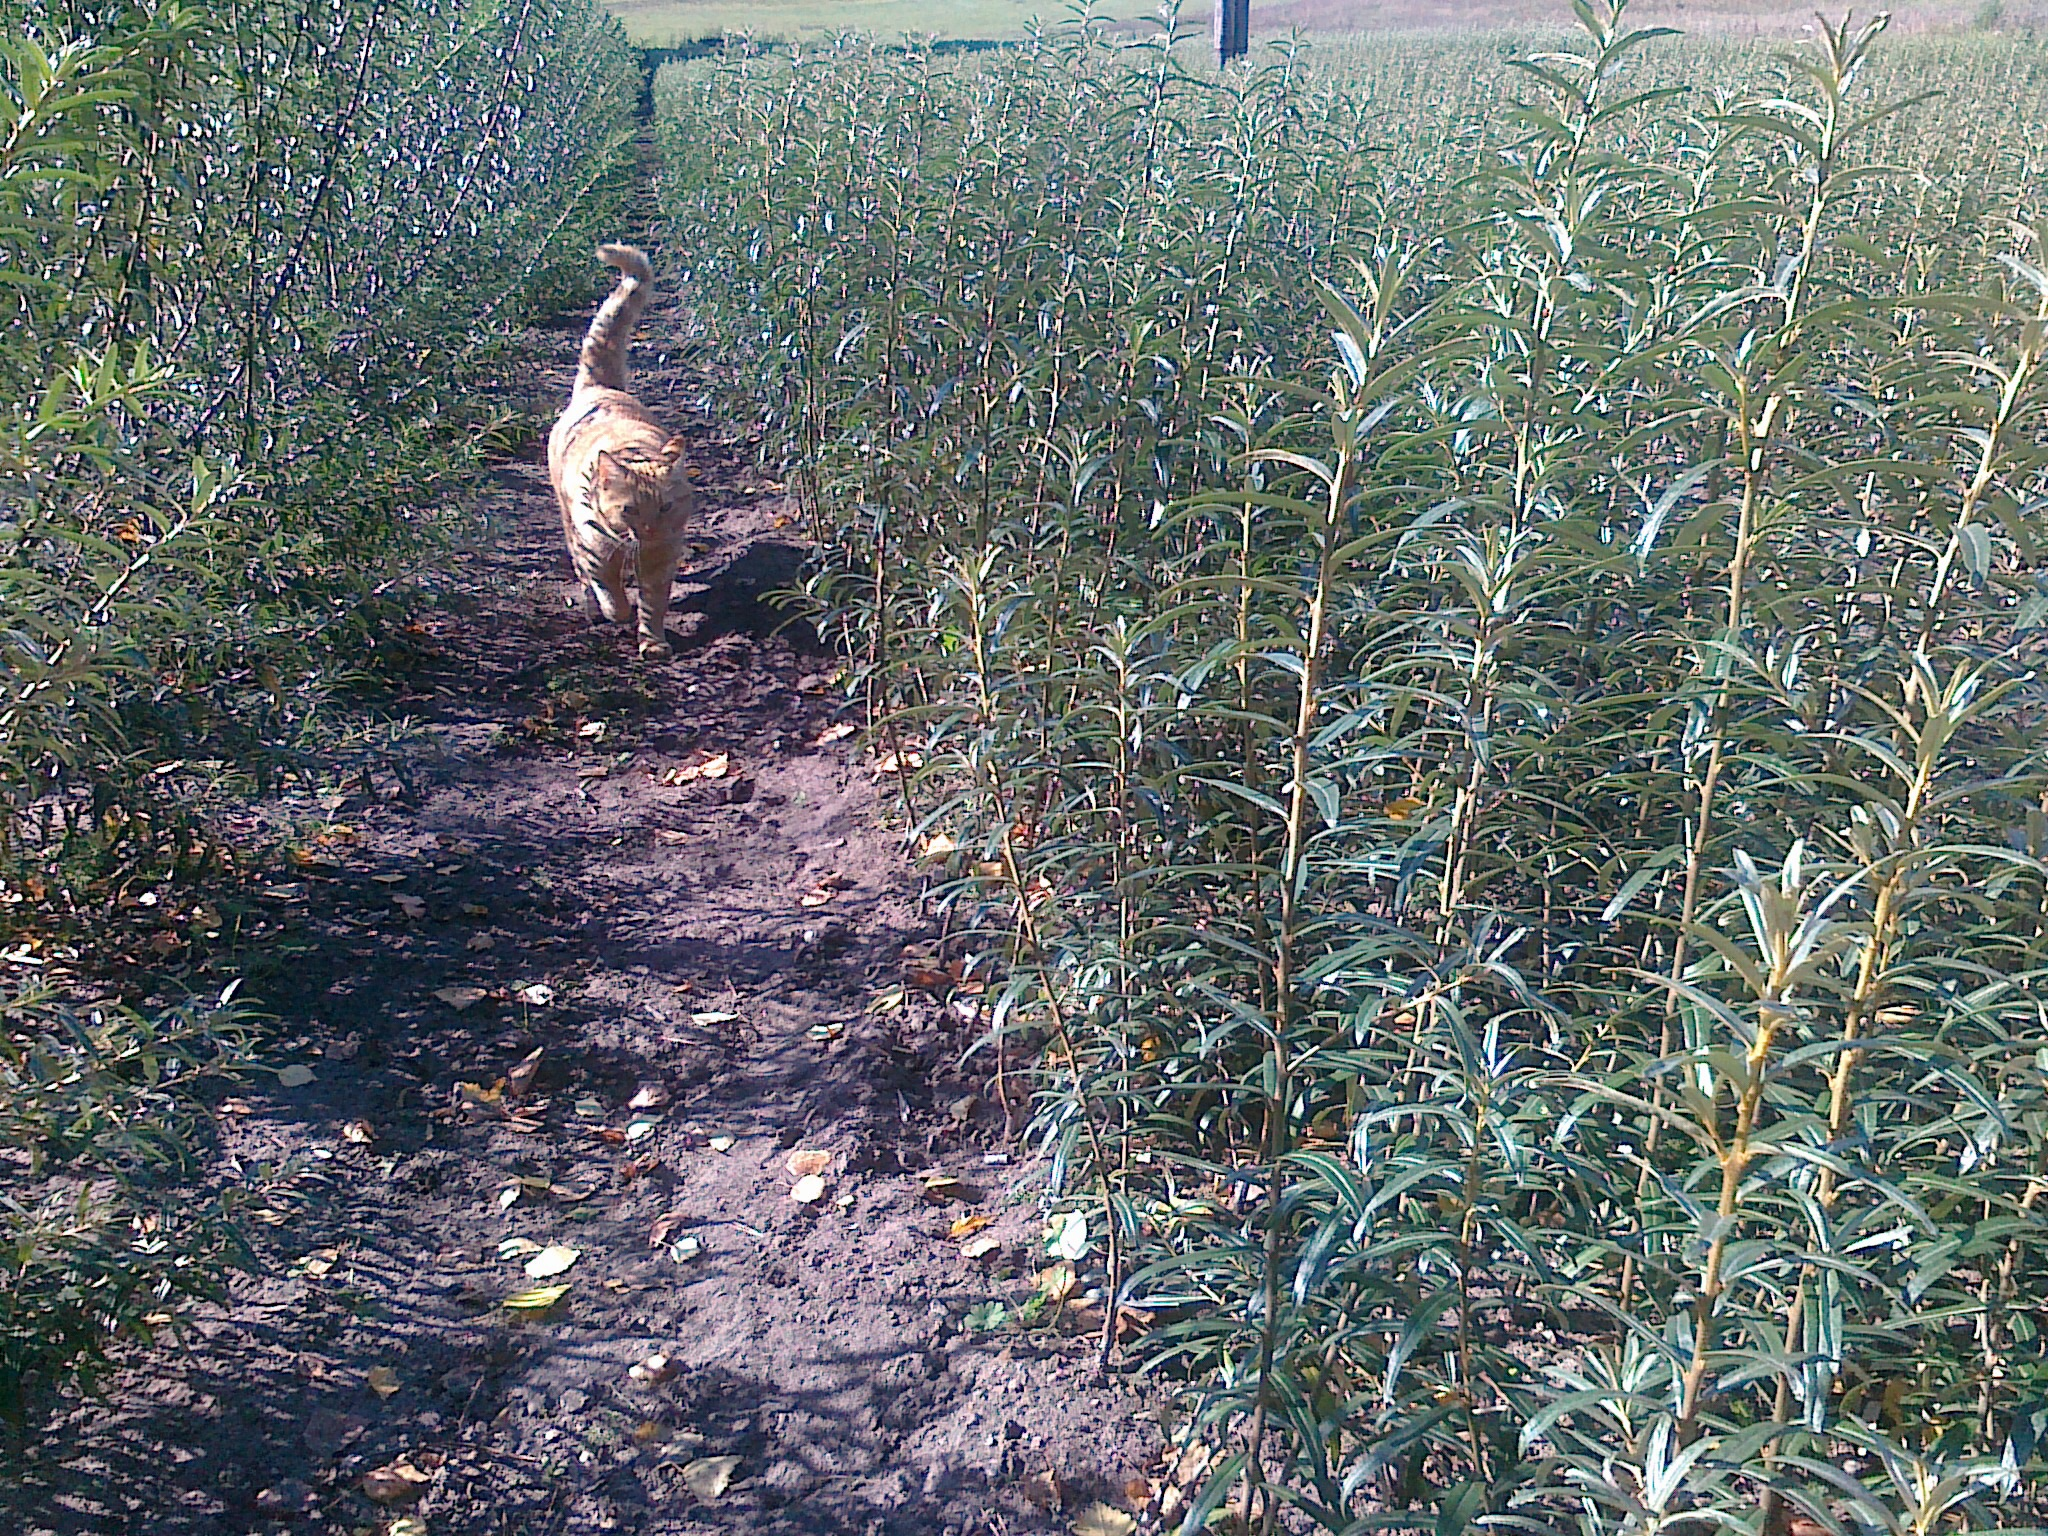 Sea buckthorn inspector.